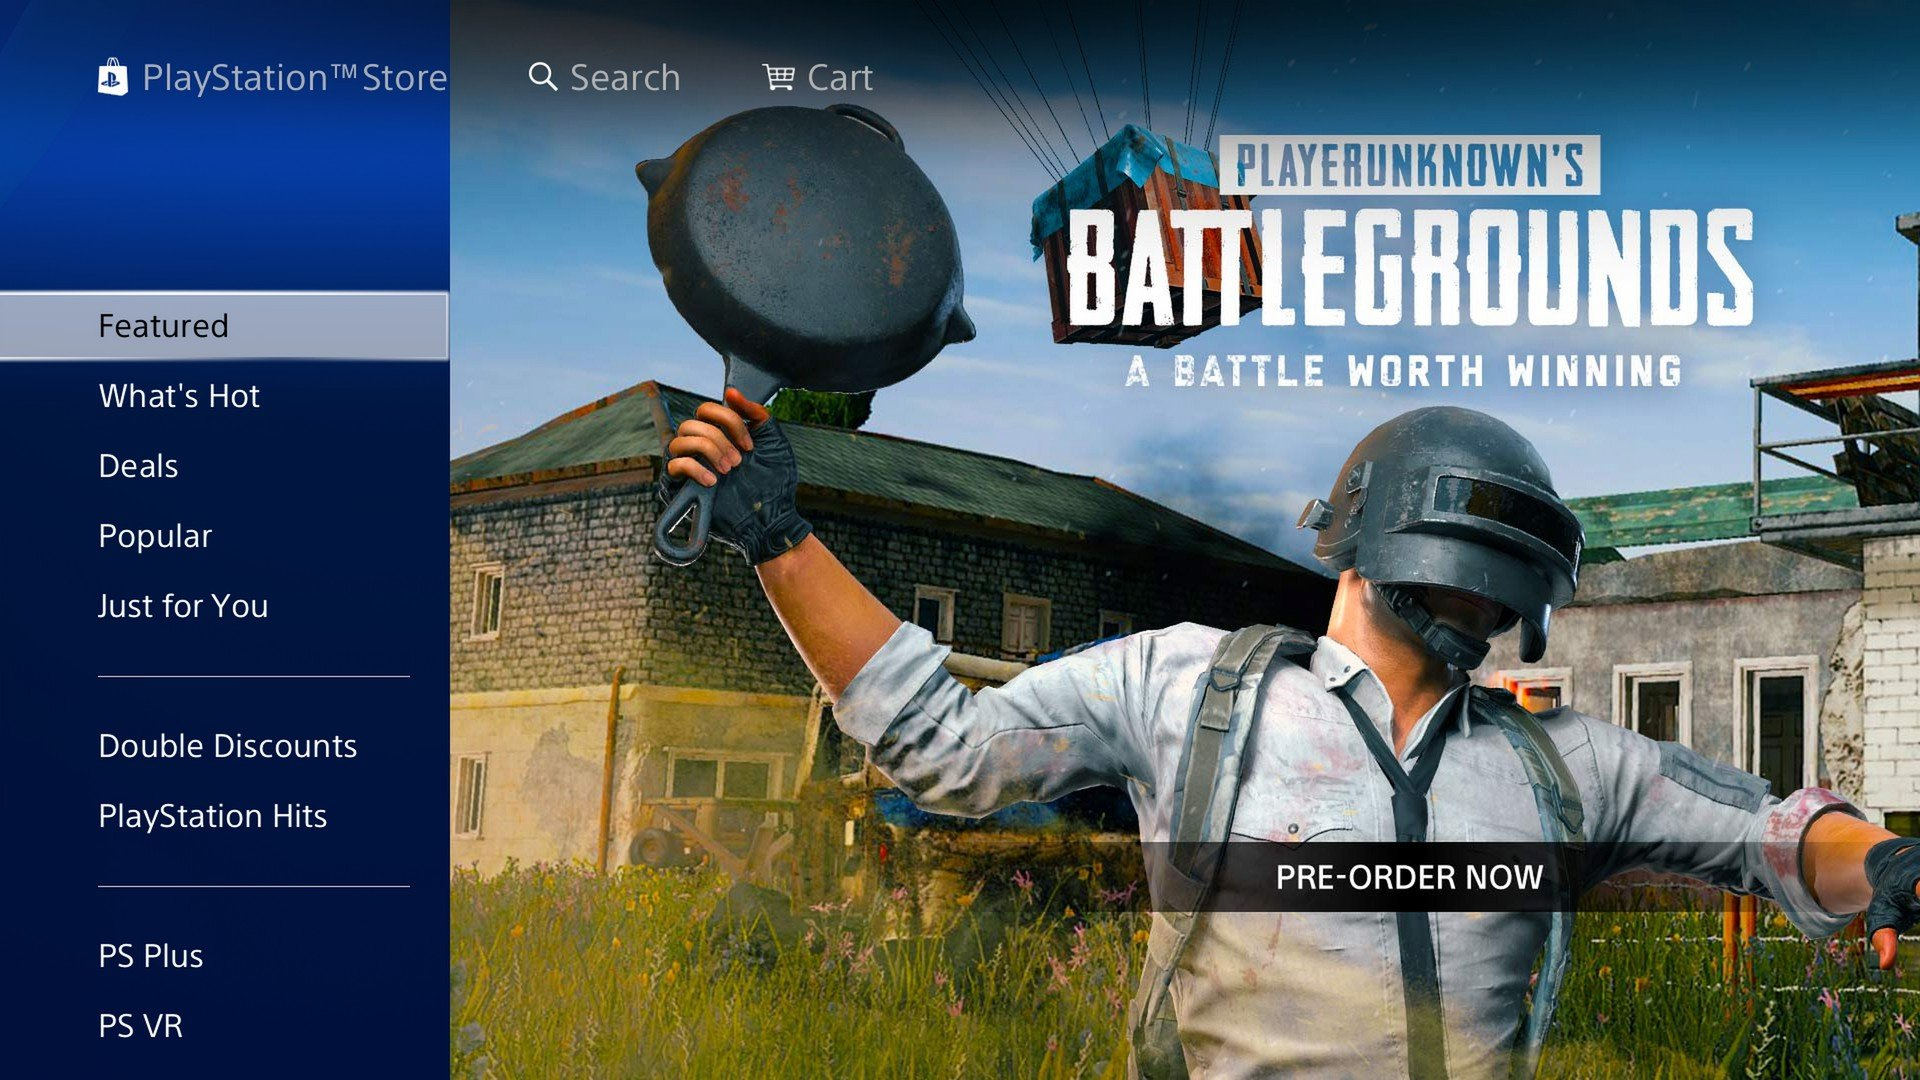 Pubg Ps4 Advertisement Spotted On Us Playstation Store Push Square